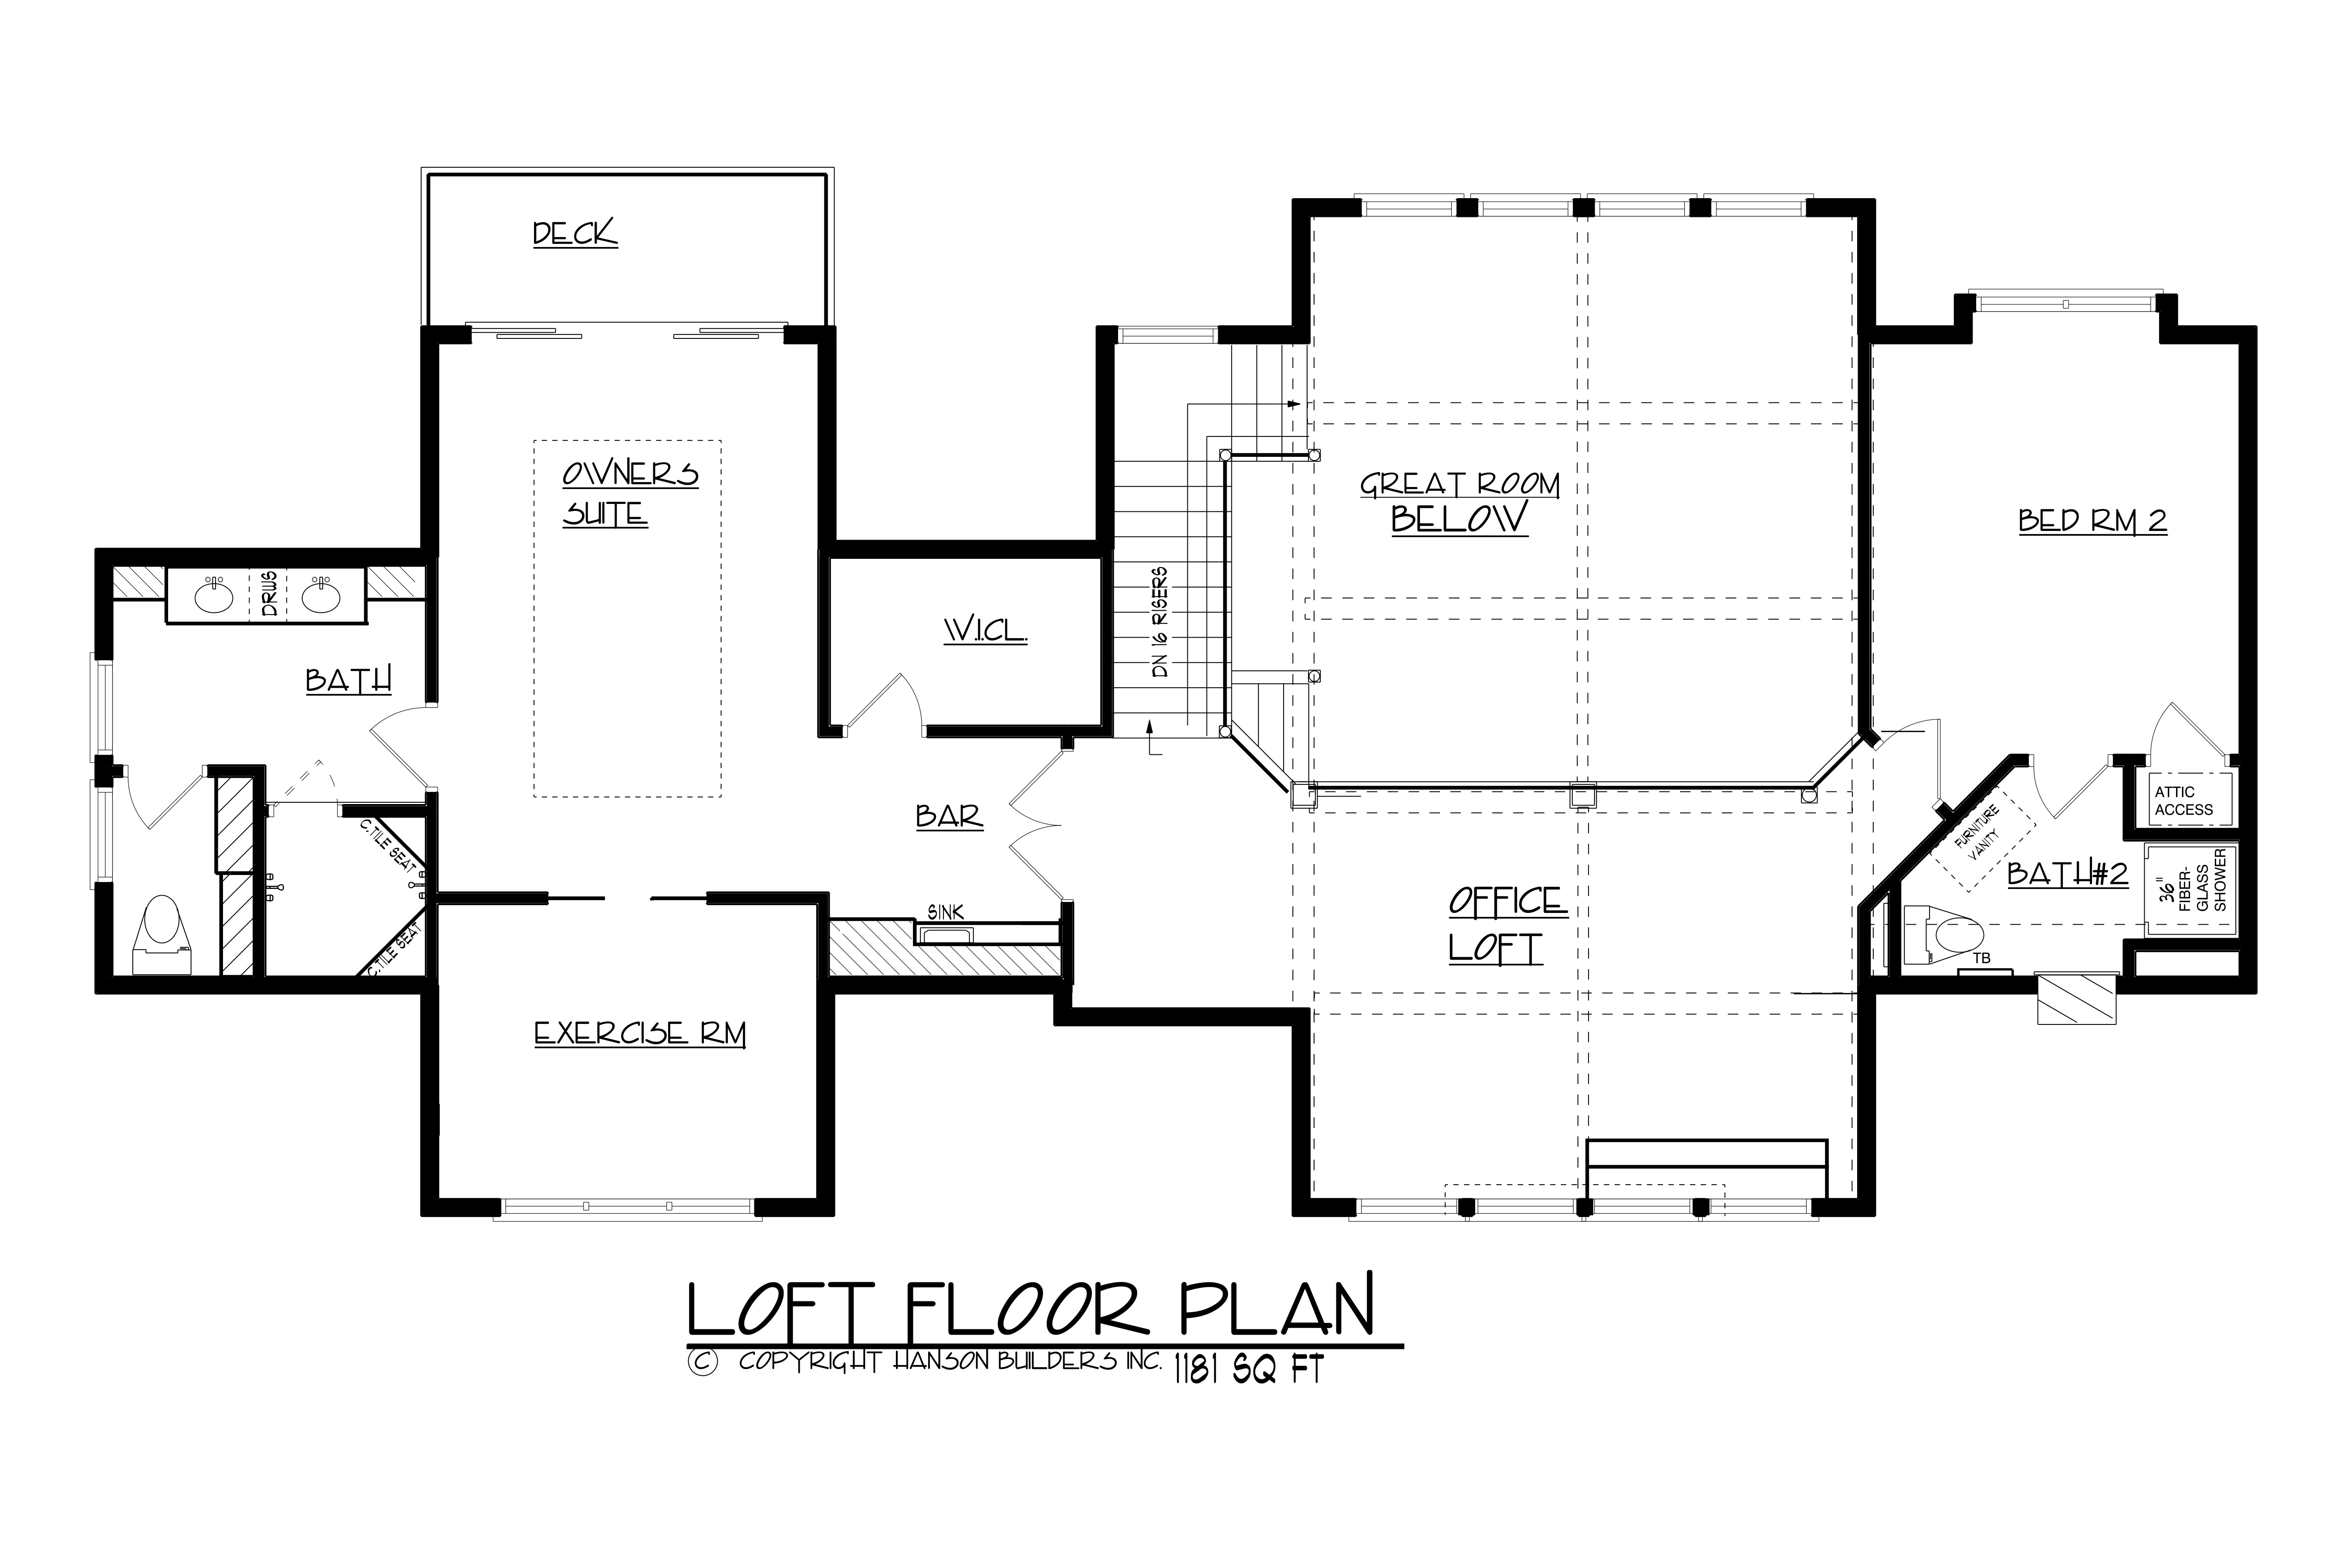 146-2810: Floor Plan Upper Level